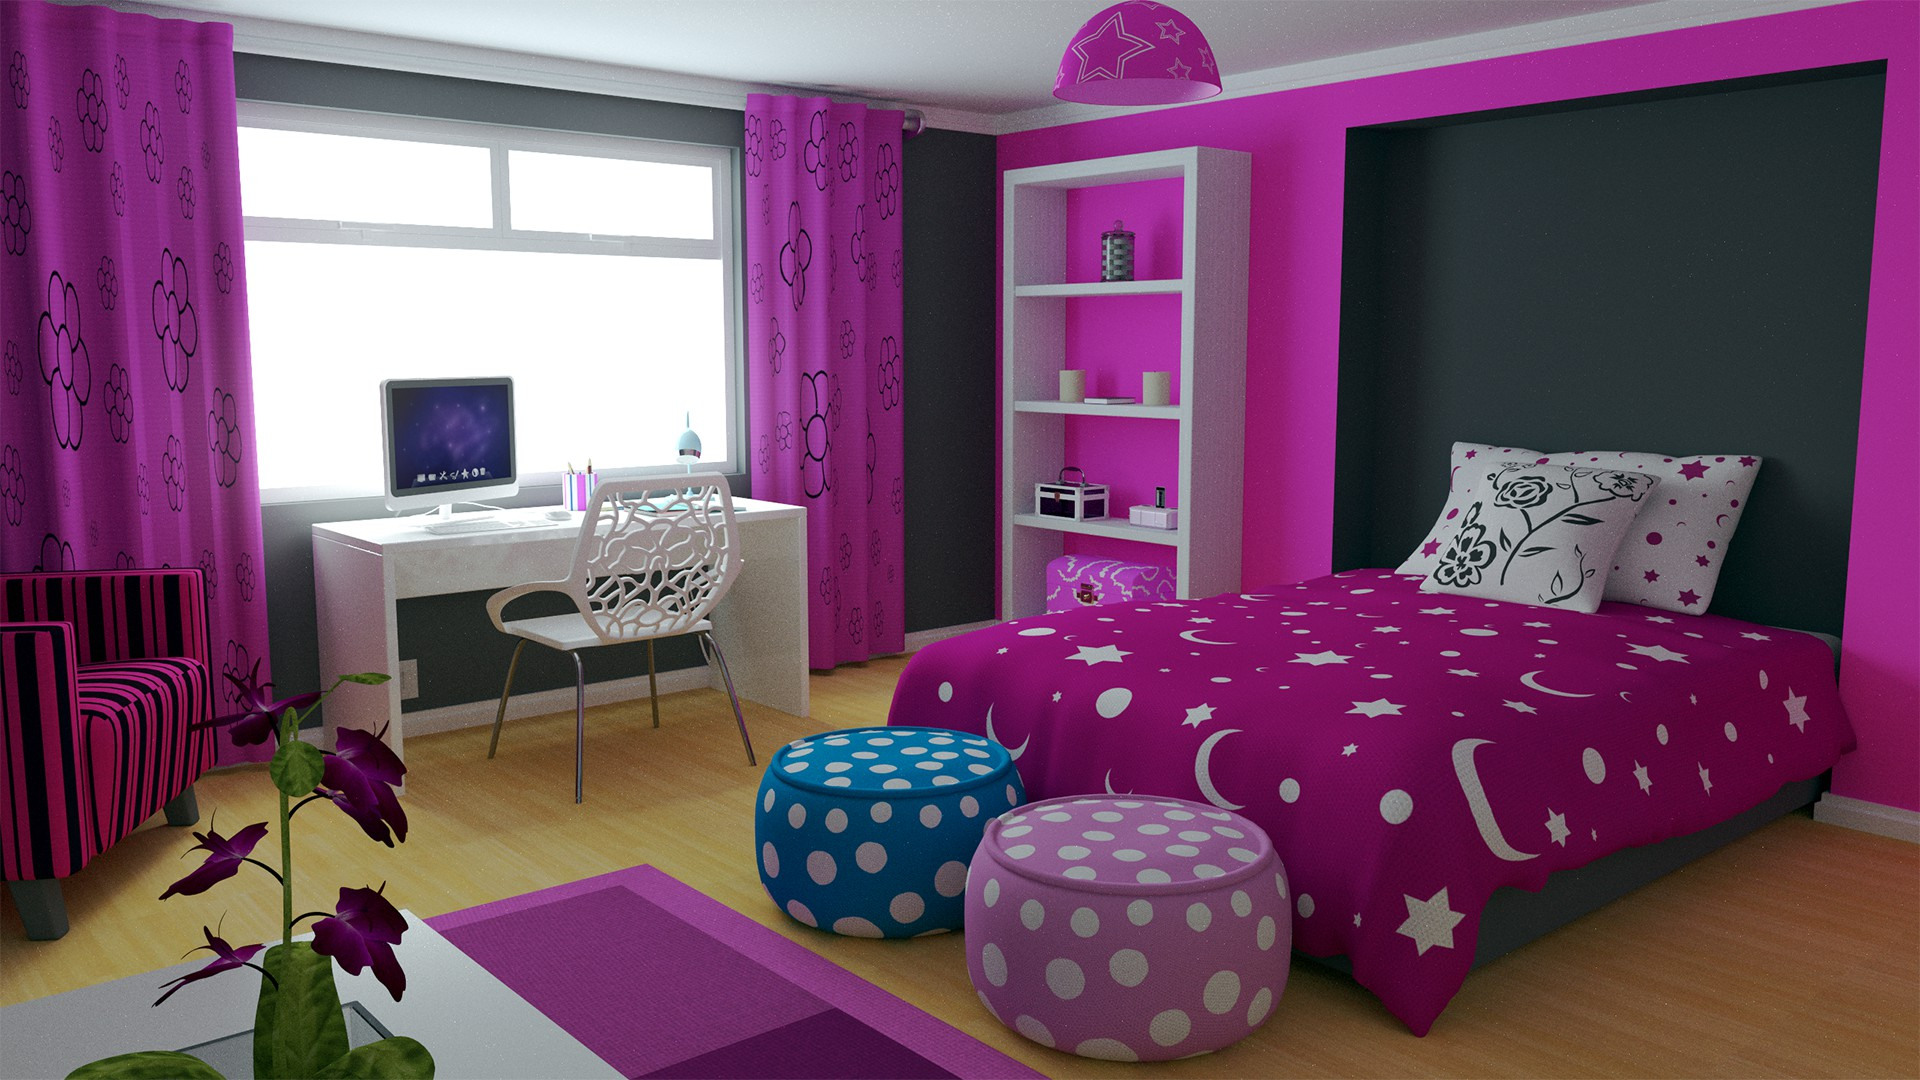 Modern Girls Bedroom By Truform 3d Modeling Home: modern bedroom ideas for girls